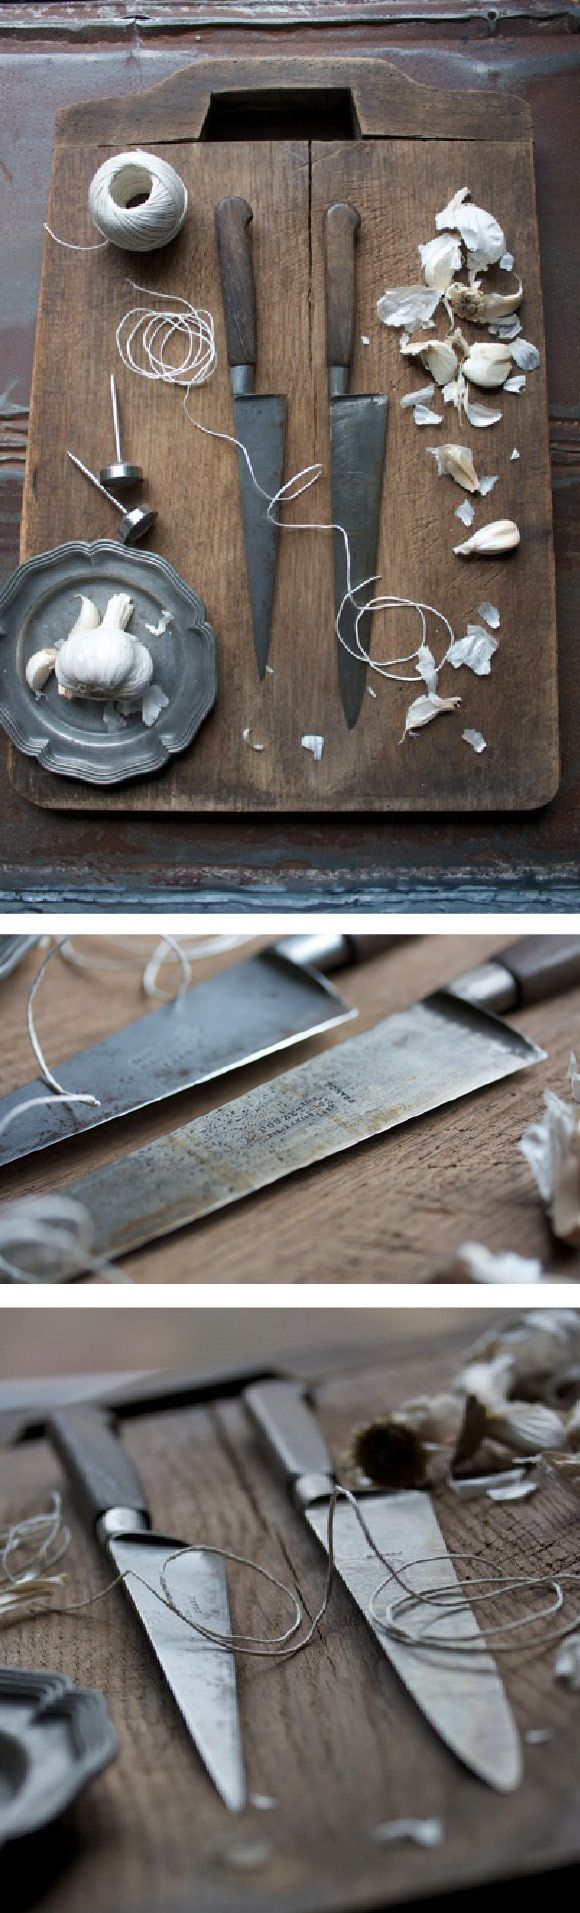 Knives And Kitchen Sharpest Best